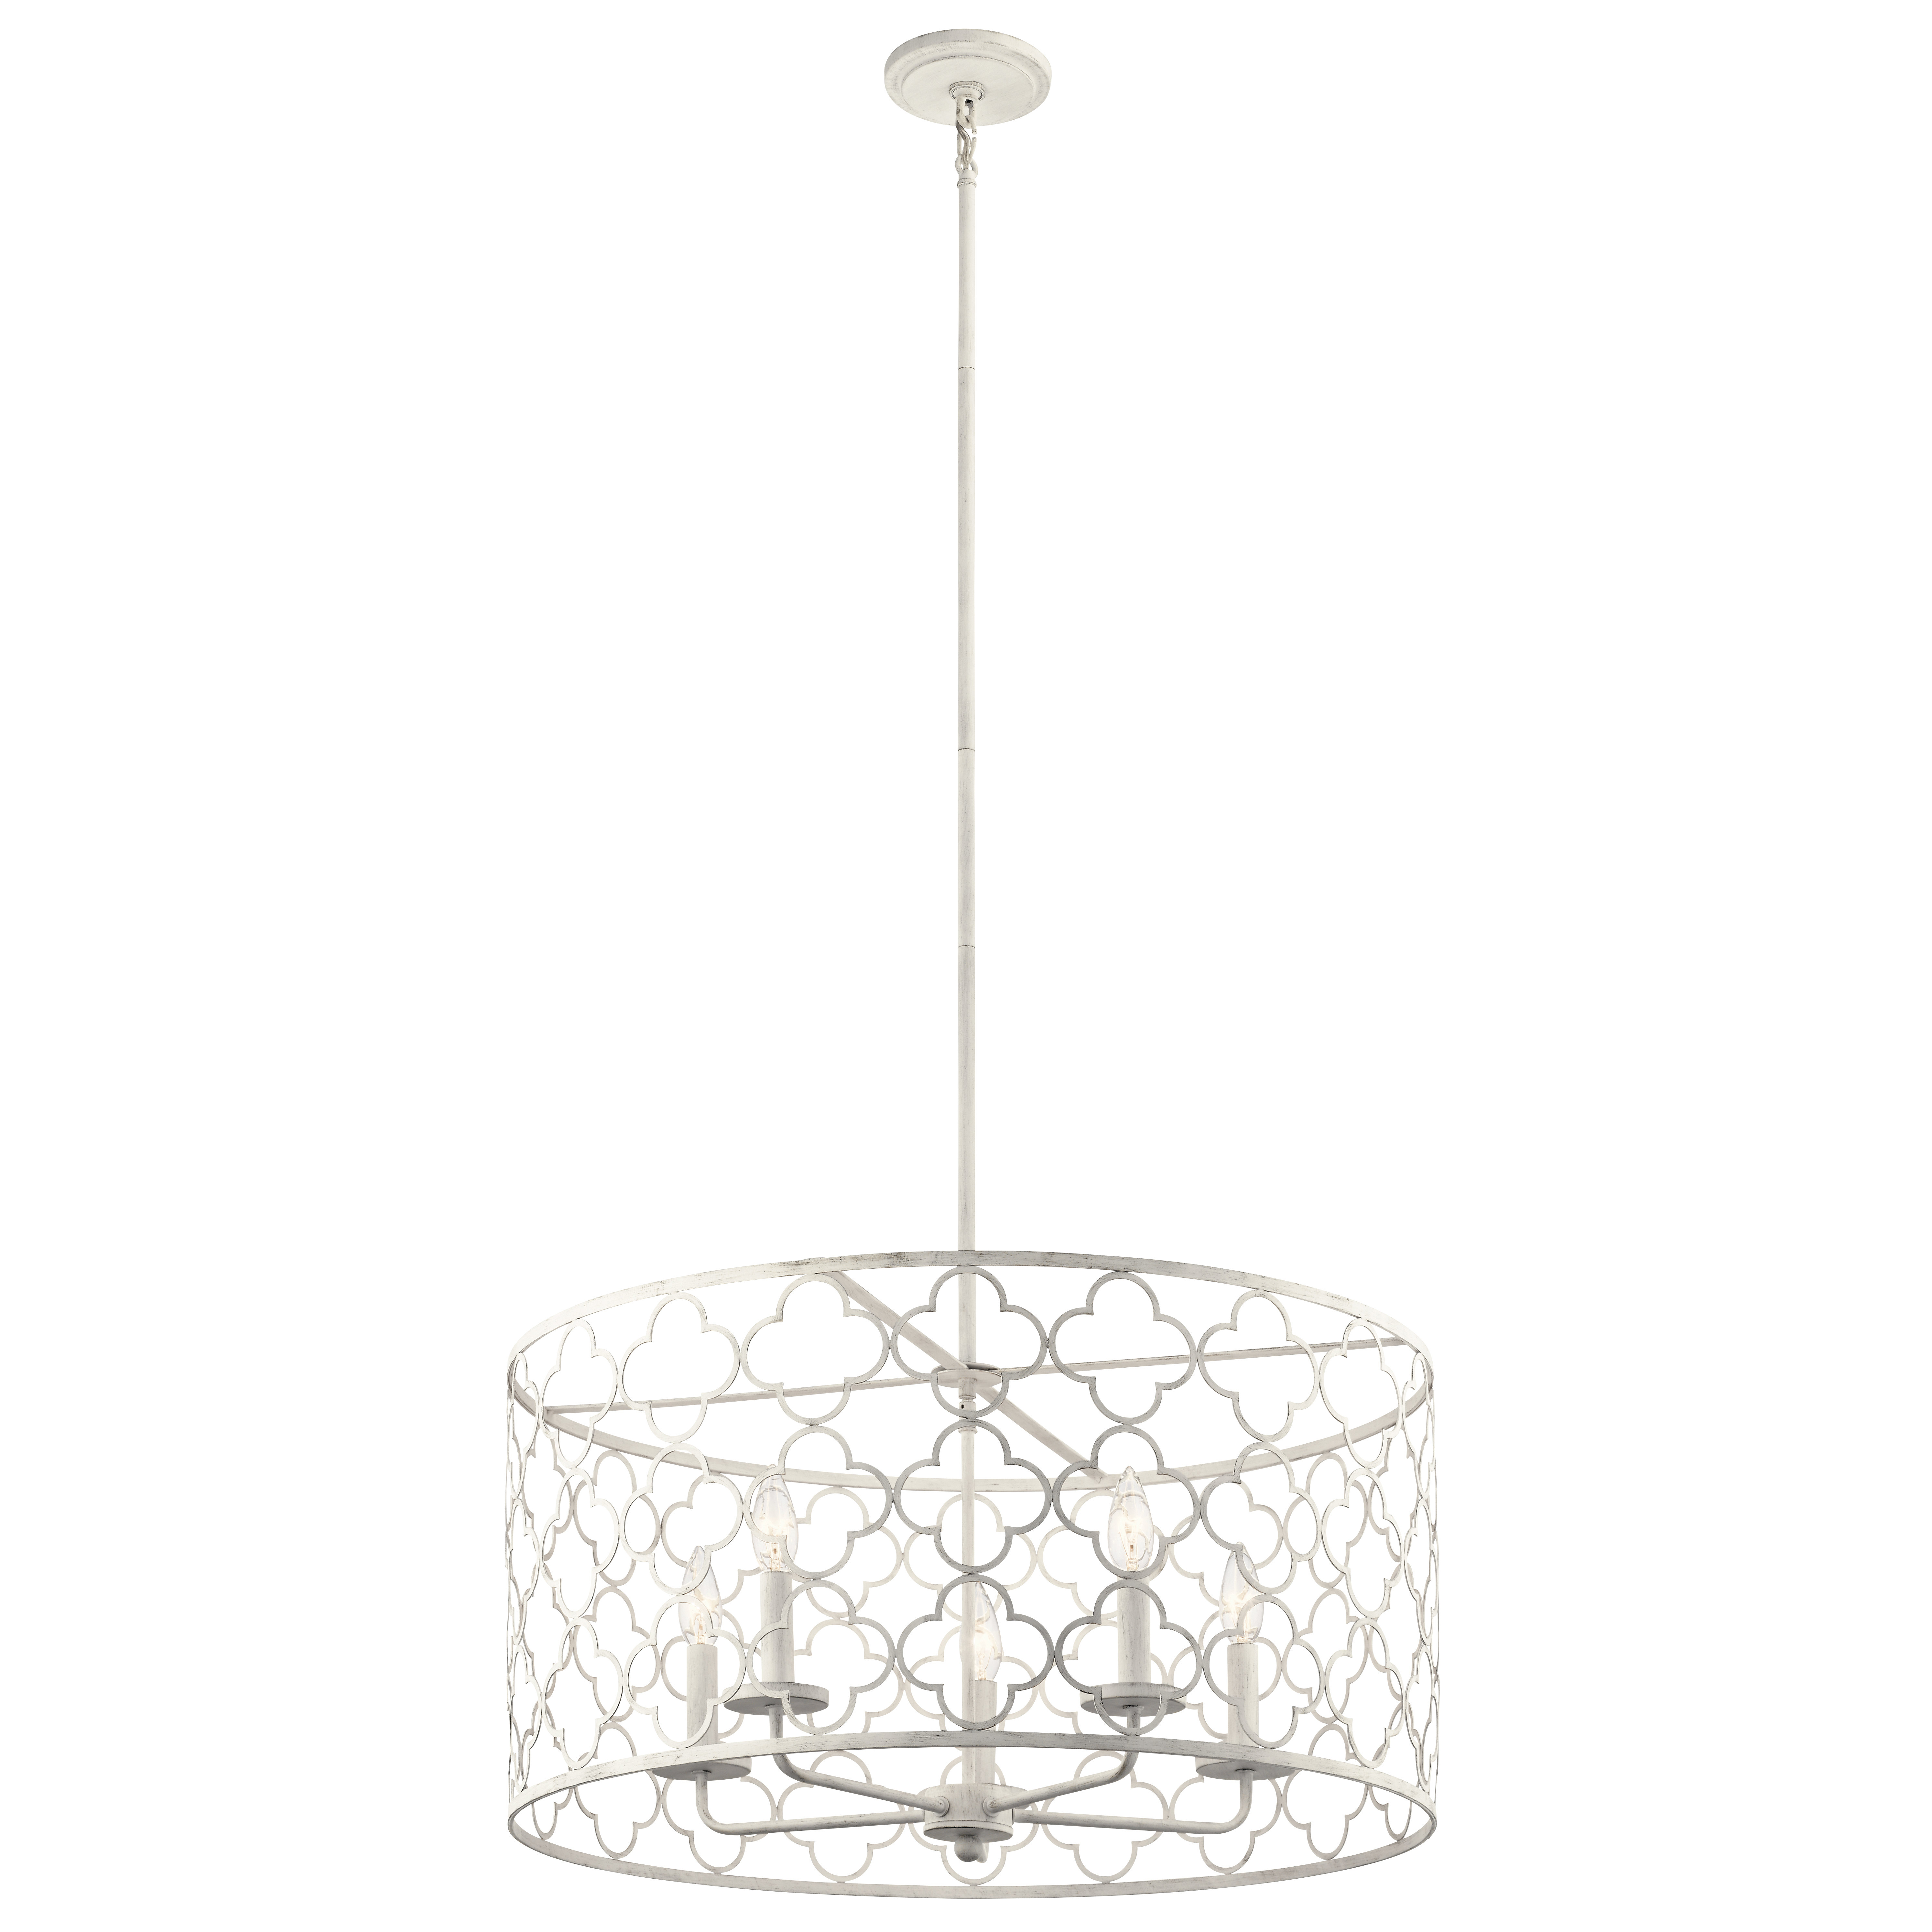 Widely Used Diller 5 Light Drum Chandelier Intended For Gisselle 4 Light Drum Chandeliers (View 19 of 25)